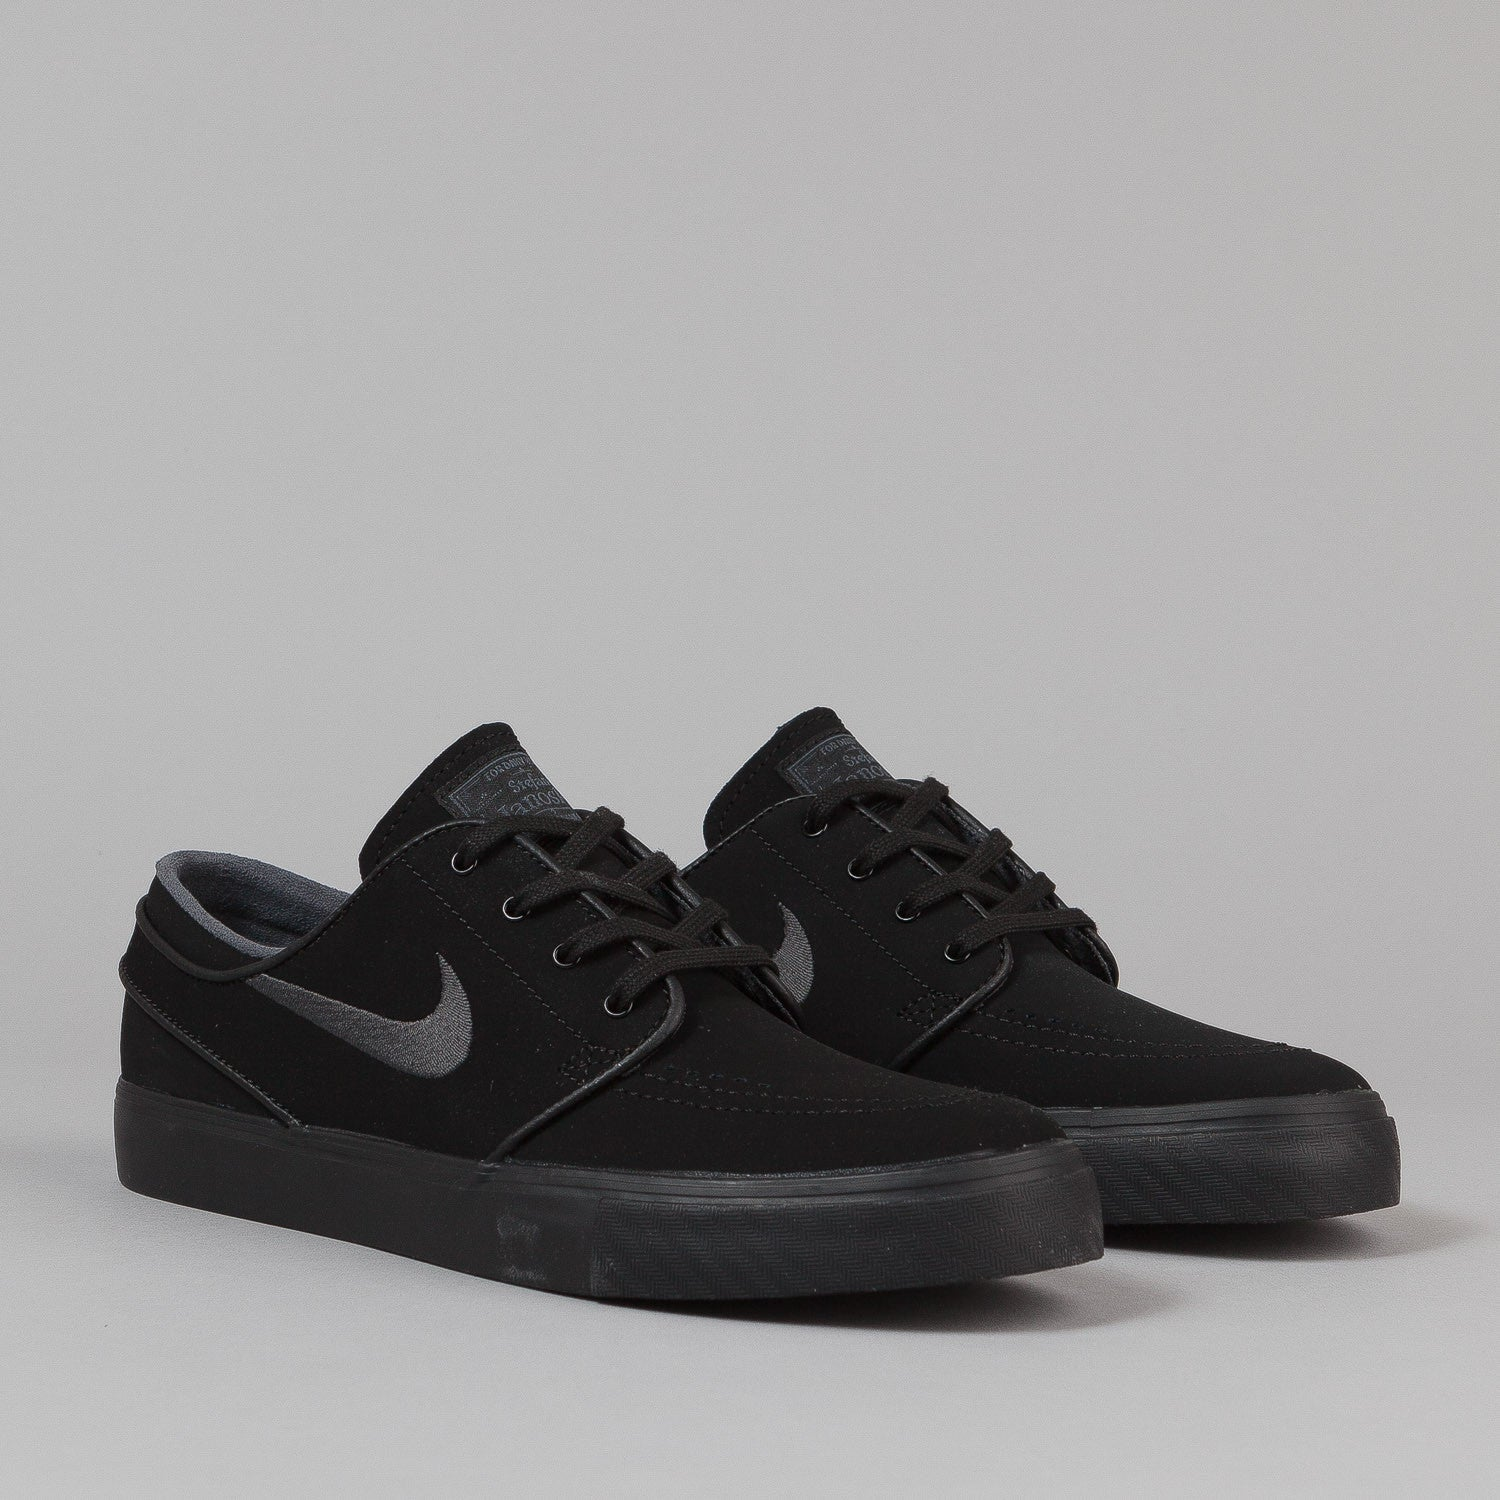 Nike SB Stefan Janoski Shoes - Black / Anthracite